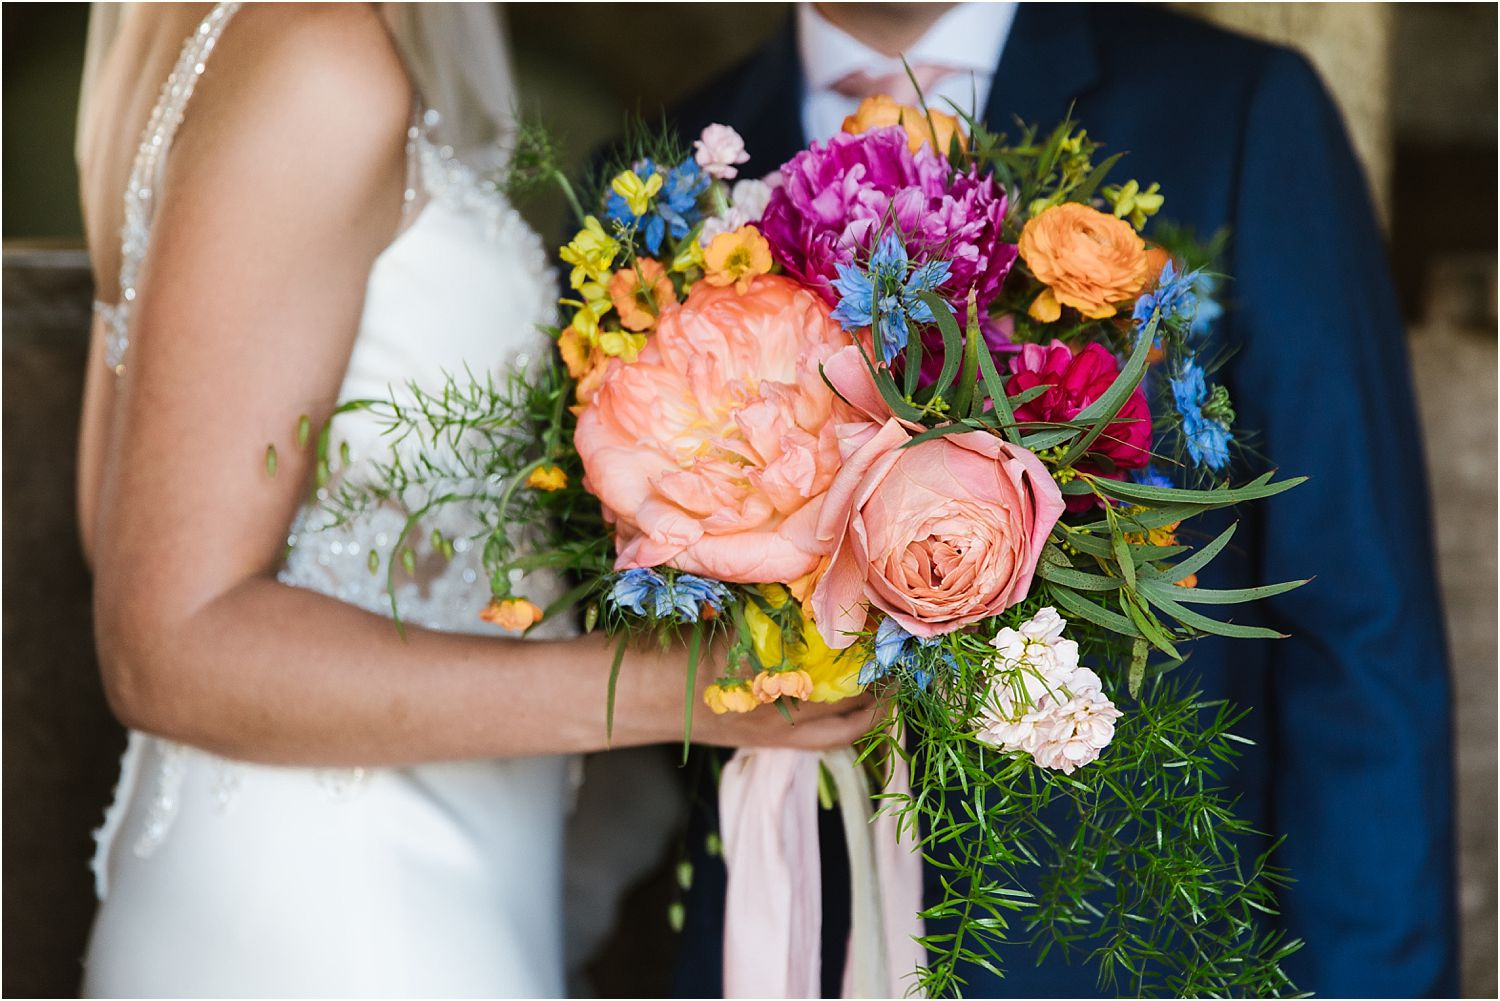 Beautiful hand tied bridal bouquet by Felicity Farm Flowers